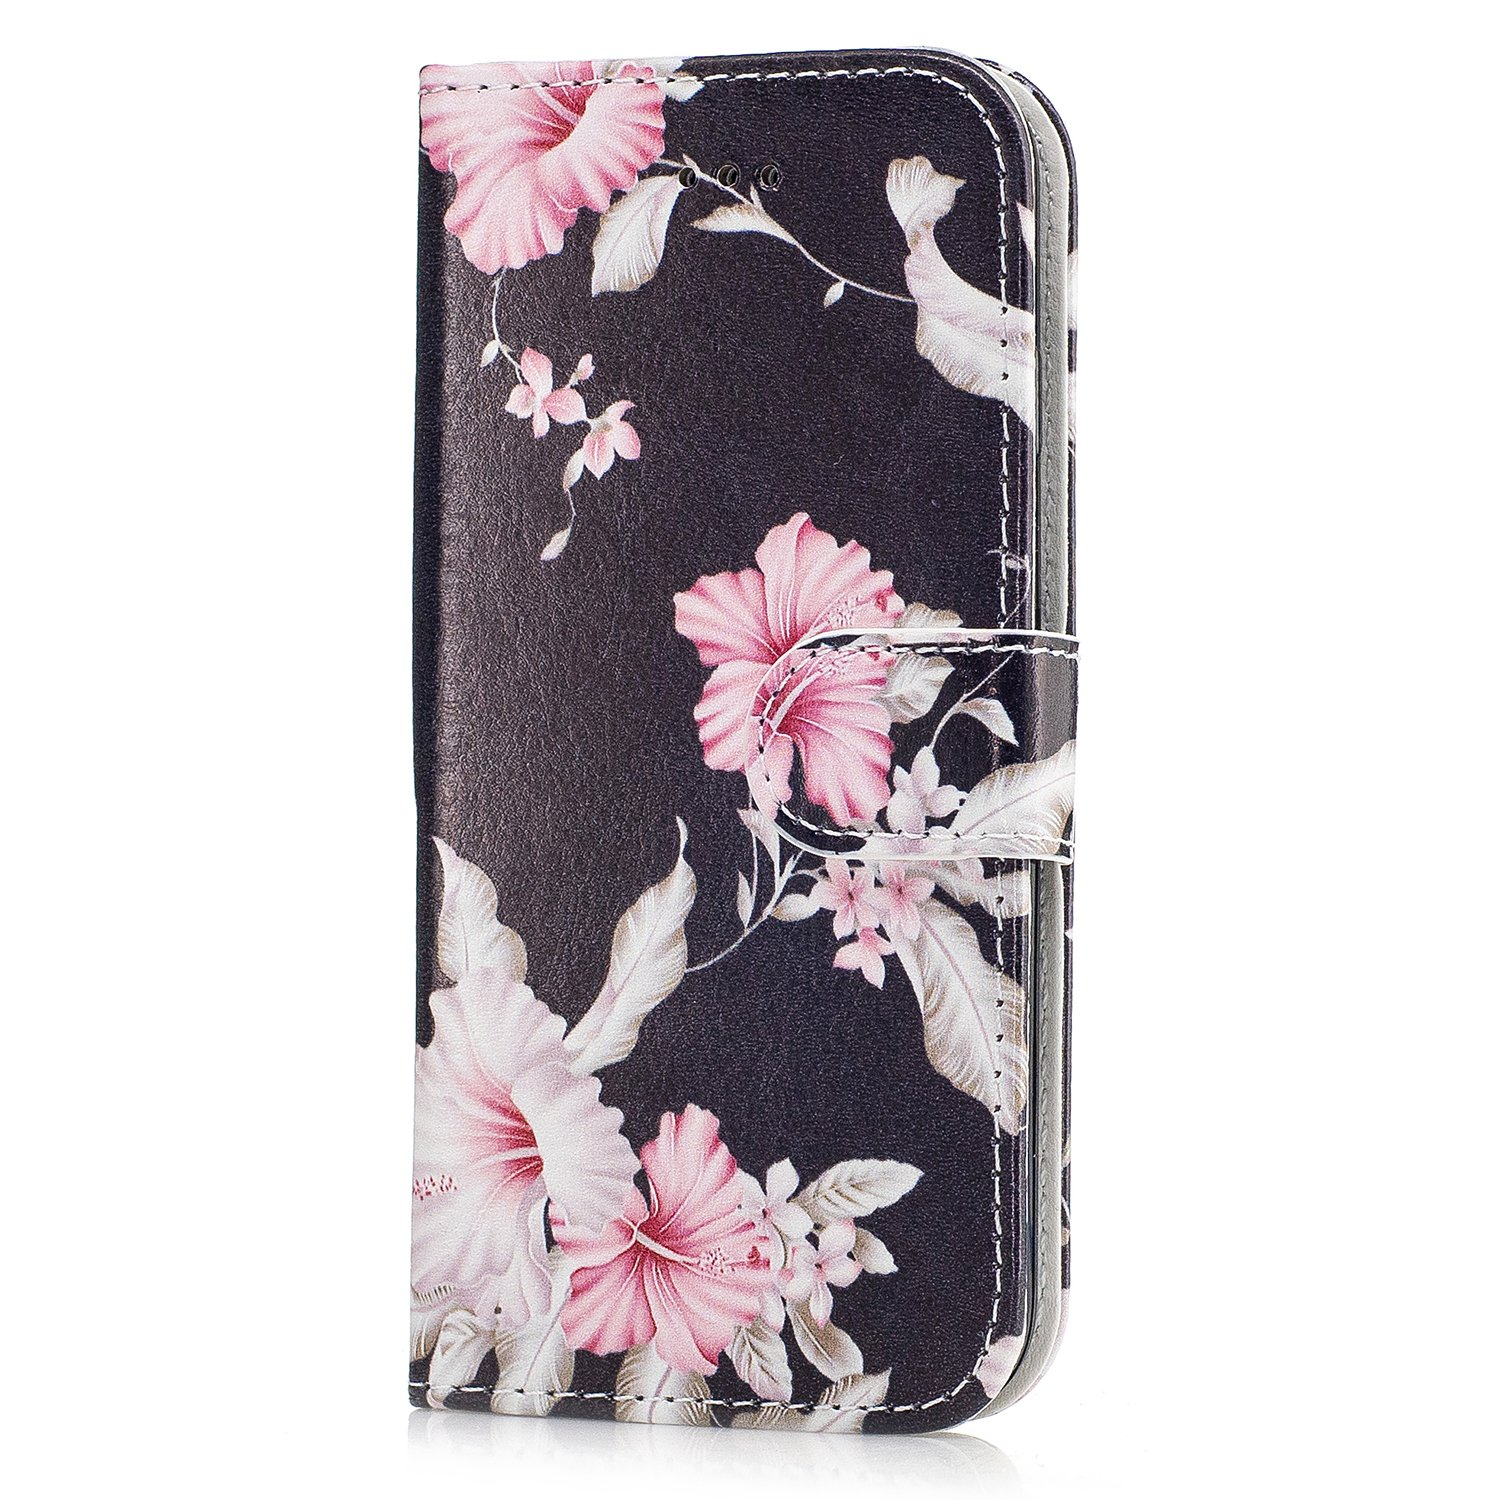 STENES iPhone 7 Wallet Case - Stylish Series Rose Flower Premium Soft PU Color matching [Stand Feature] Leather Wallet Cover Flip Cases For iPhone 7 - Black